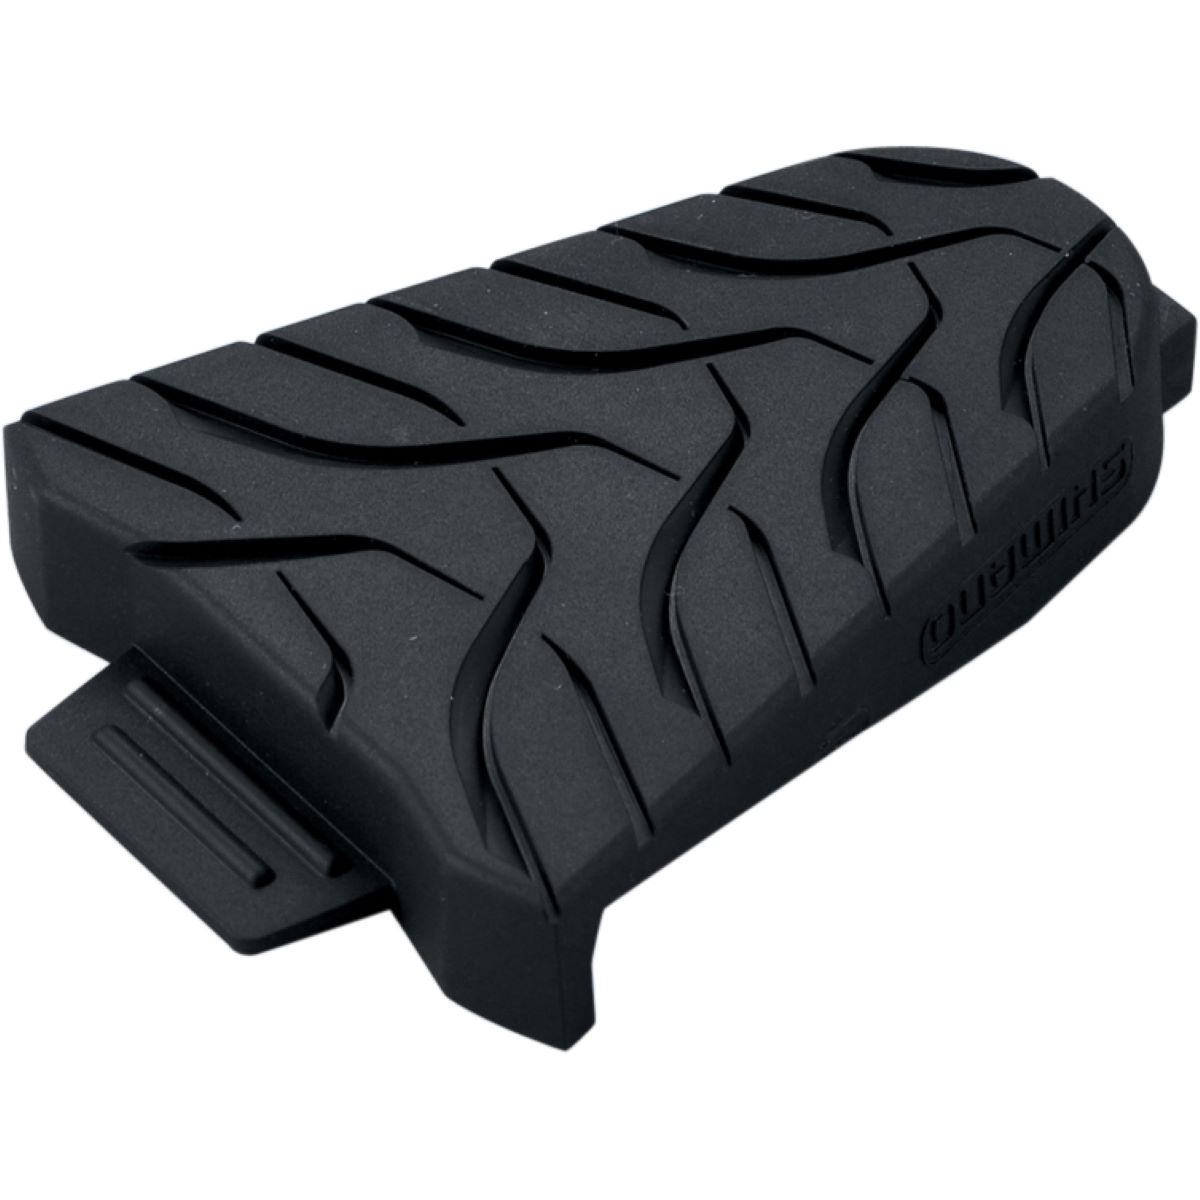 Shimano SPD-SL Pedal Cleat Covers